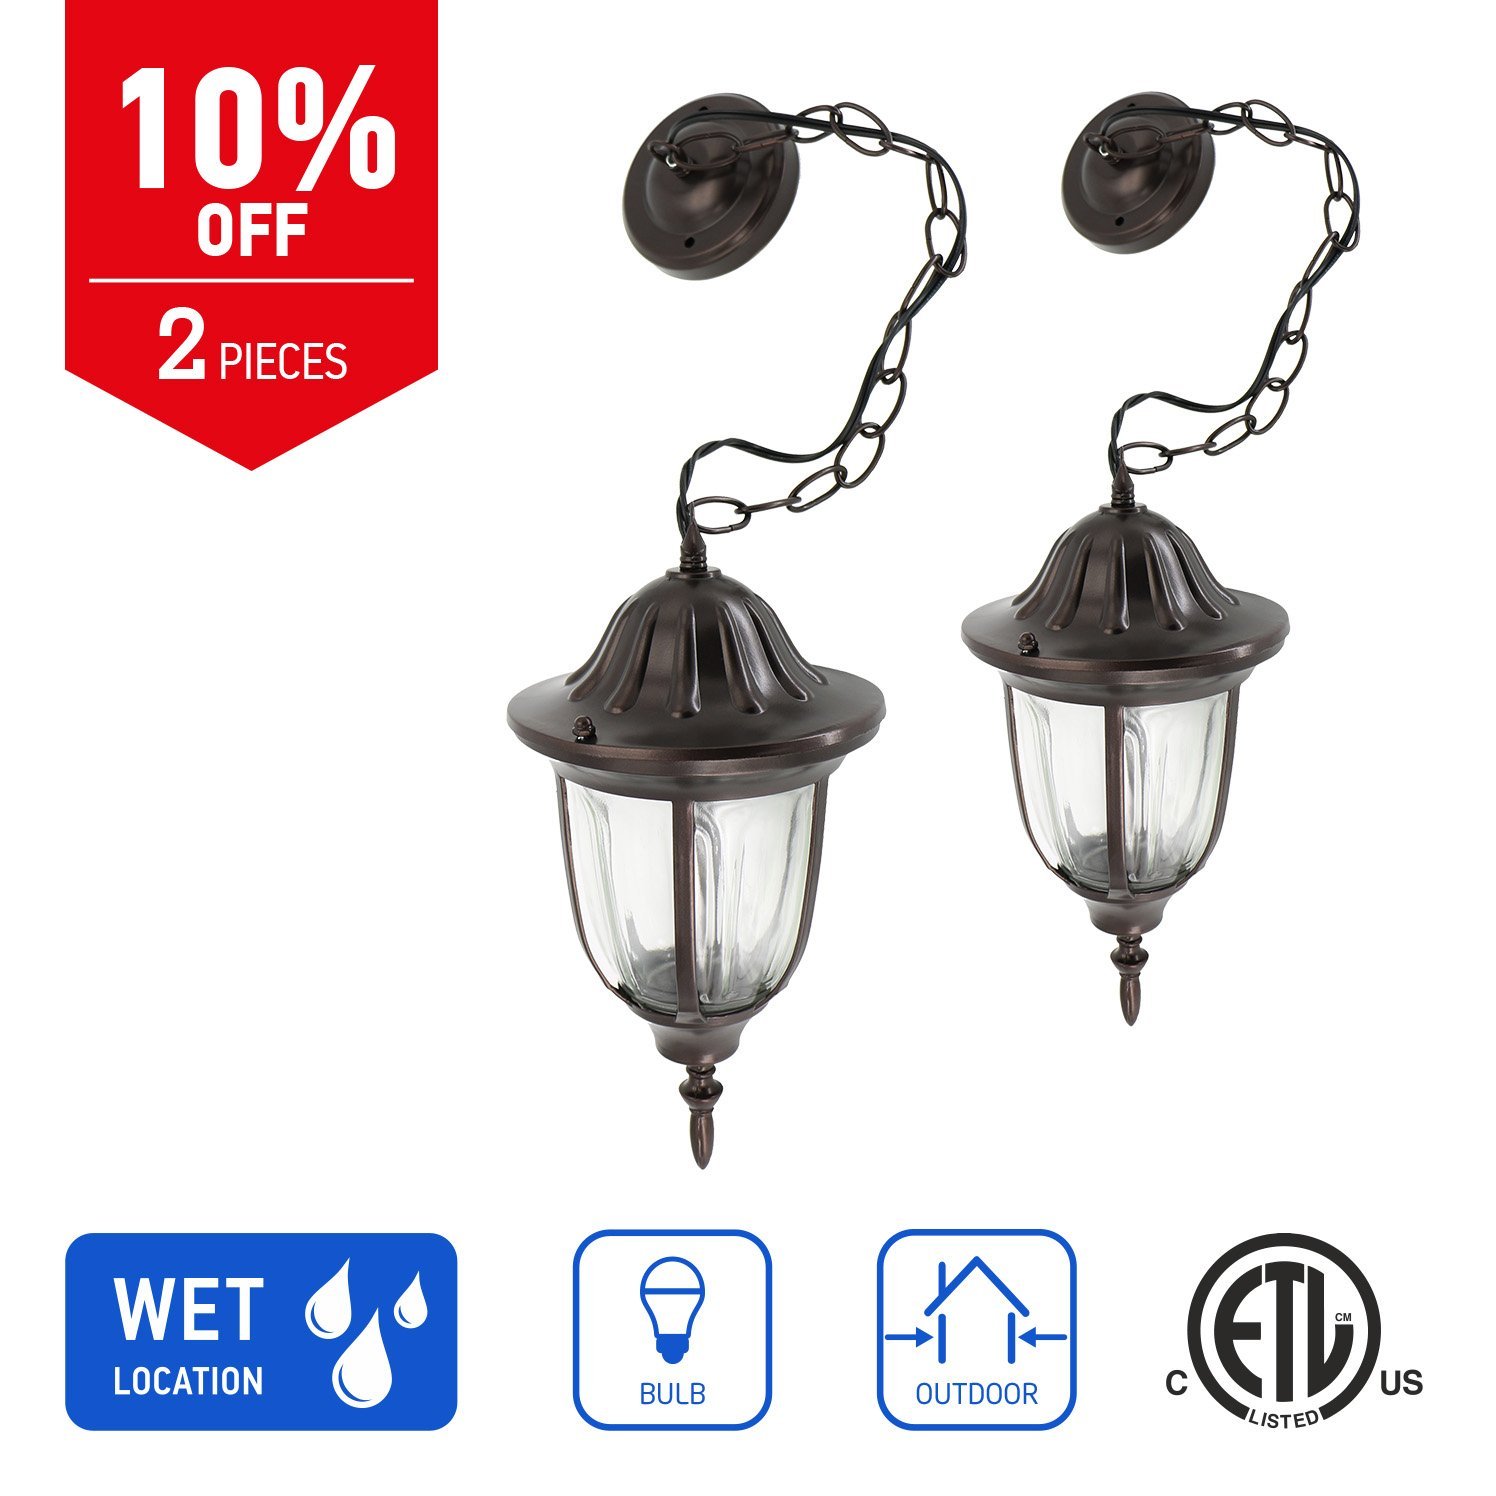 in Home 1-Light Outdoor Pendant Lantern L03 Series Traditional Design Bronze Finish Clear Glass Shade (2 Pack), ETL Listed